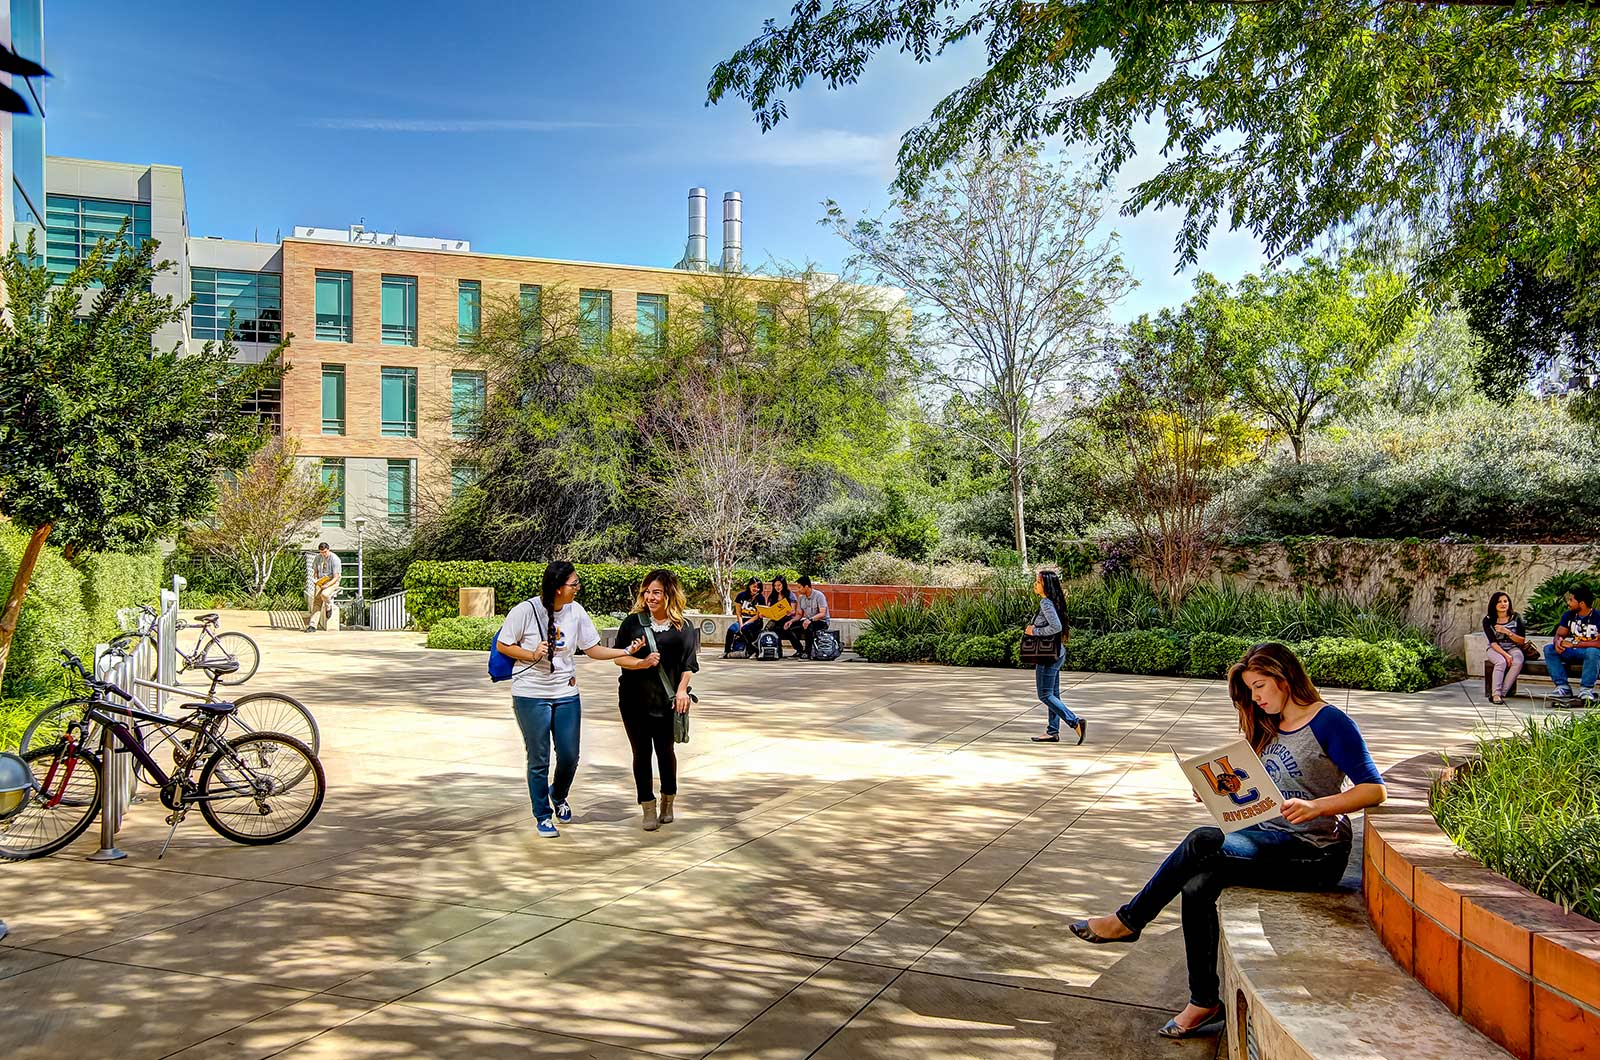 Pathway-at-College-360-Tours-Virtual-Tour-Company-College-Vitual-Tours-Virtual-Tours-For-College